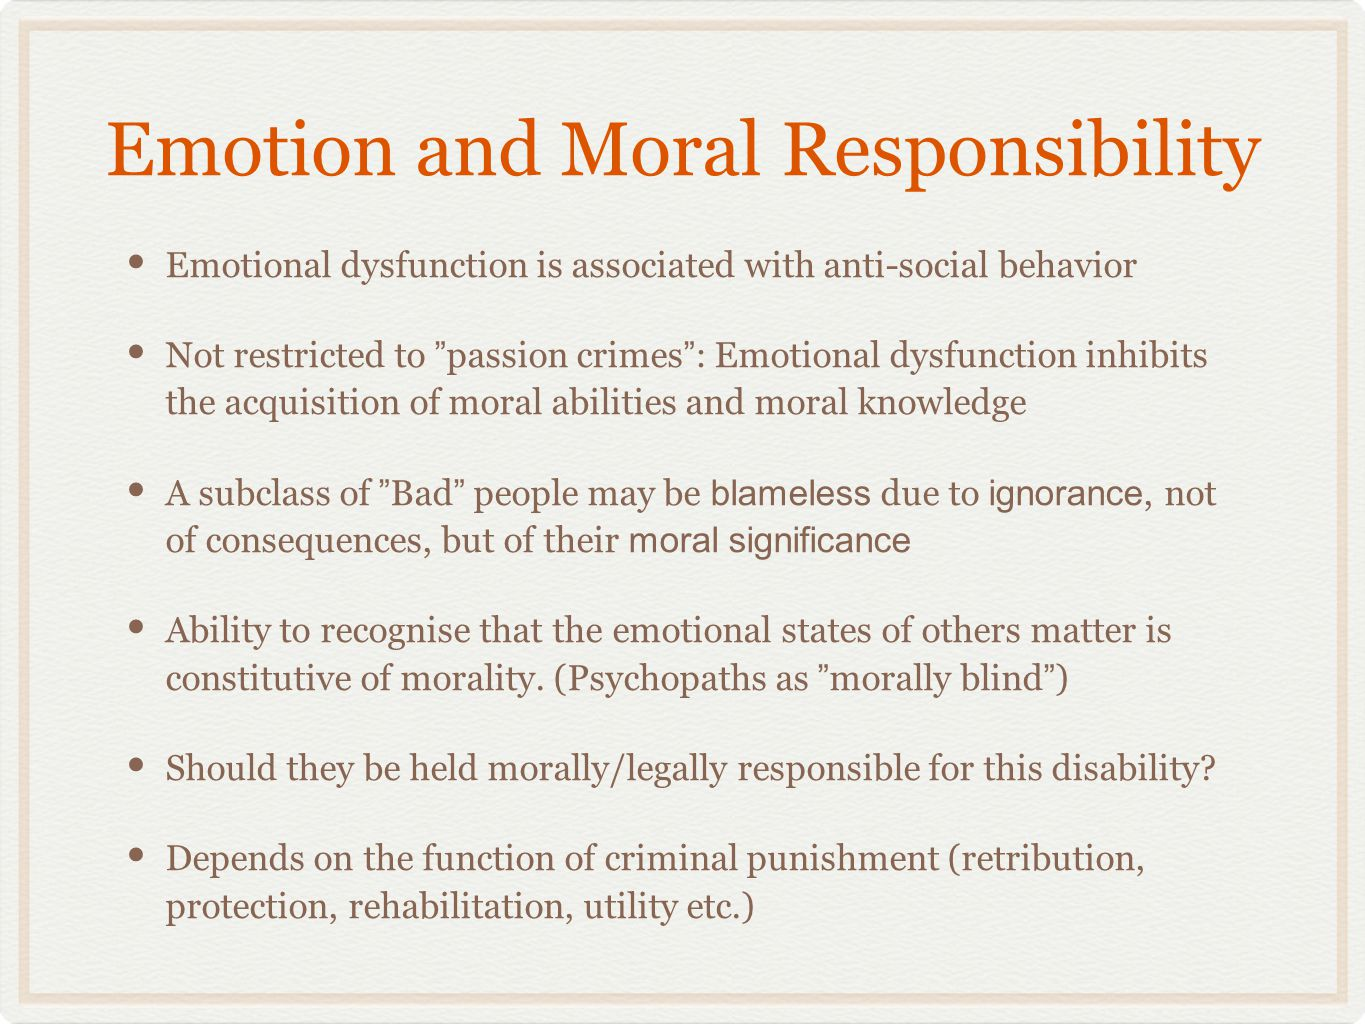 Summary Moral sentimentalism: Emotions are central to morality, in a couple of ways: 1) Emotions matters - they are constitutive of moral facts 2) Emotions are central to moral knowledge, and to moral functioning If an agent suffers from an emotional dysfunction, then she may lack moral evidence or capacity to assess the moral significance of her actions Information about emotional dysfunction, then, should be considered when assessing moral responsibility, and when determining criminal punishment or treatment